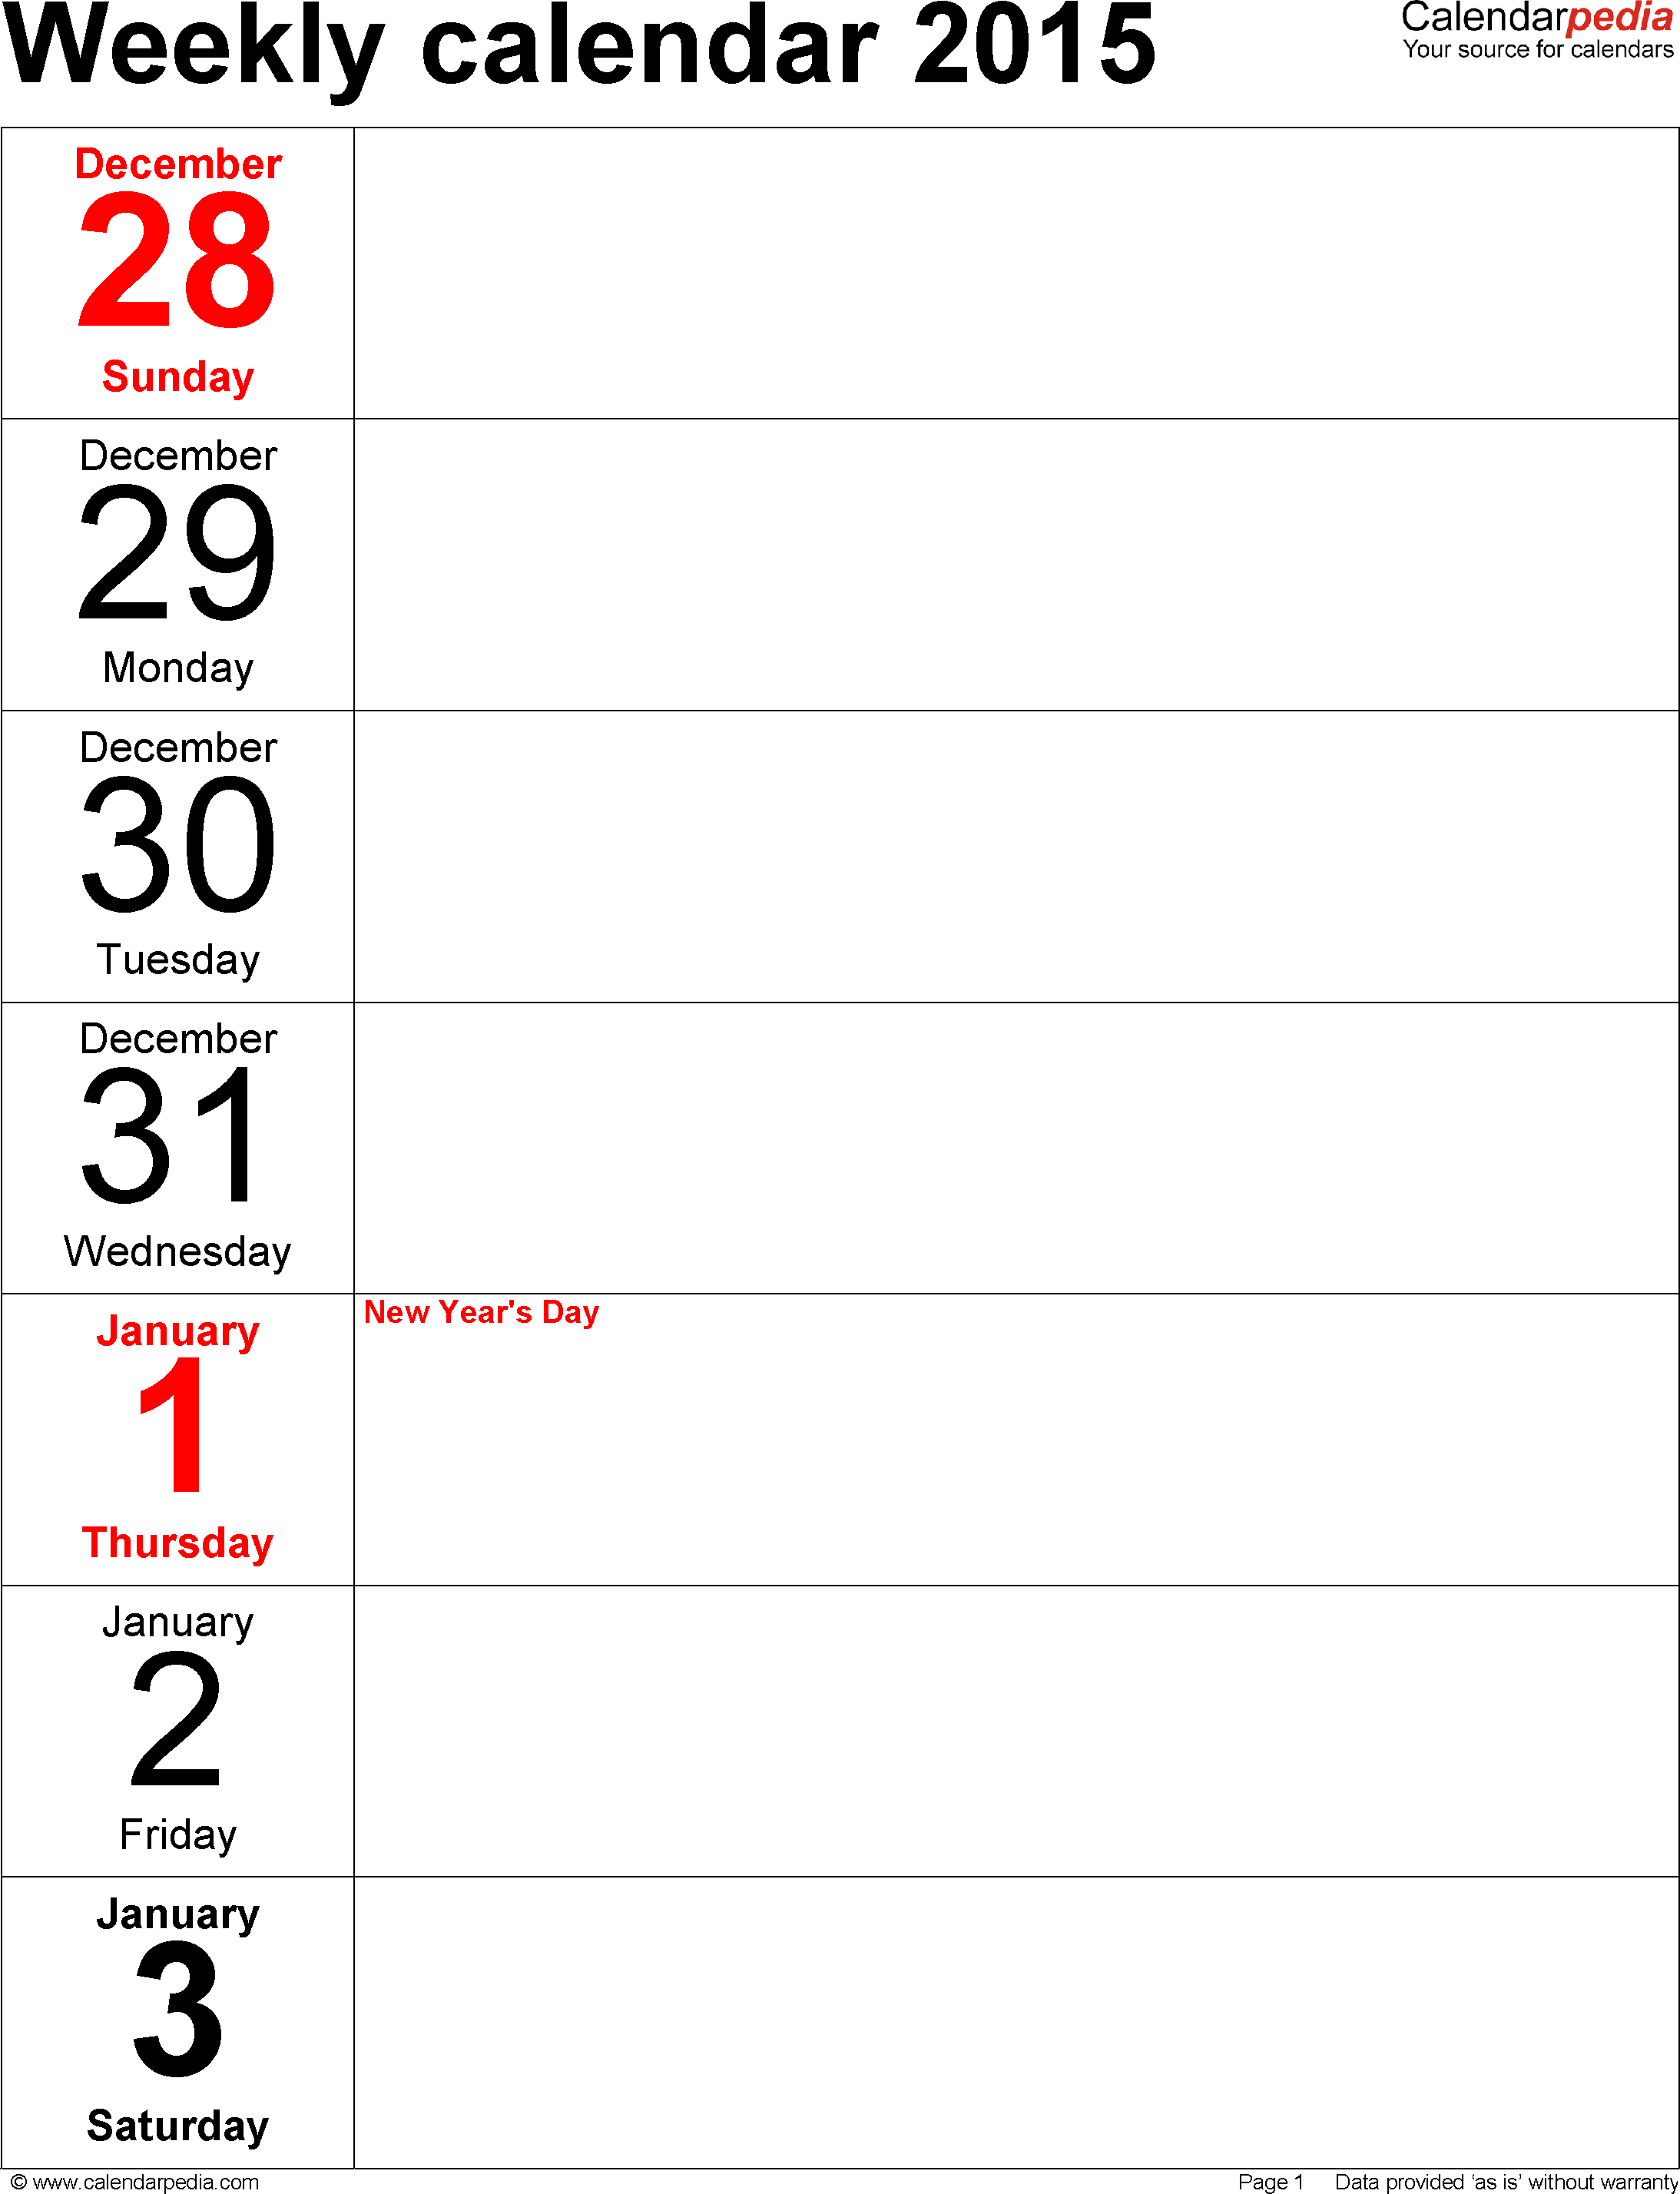 Weekly calendar 2015: template for Word version 10, portrait, 53 pages, days vertically, great for a weekly diary